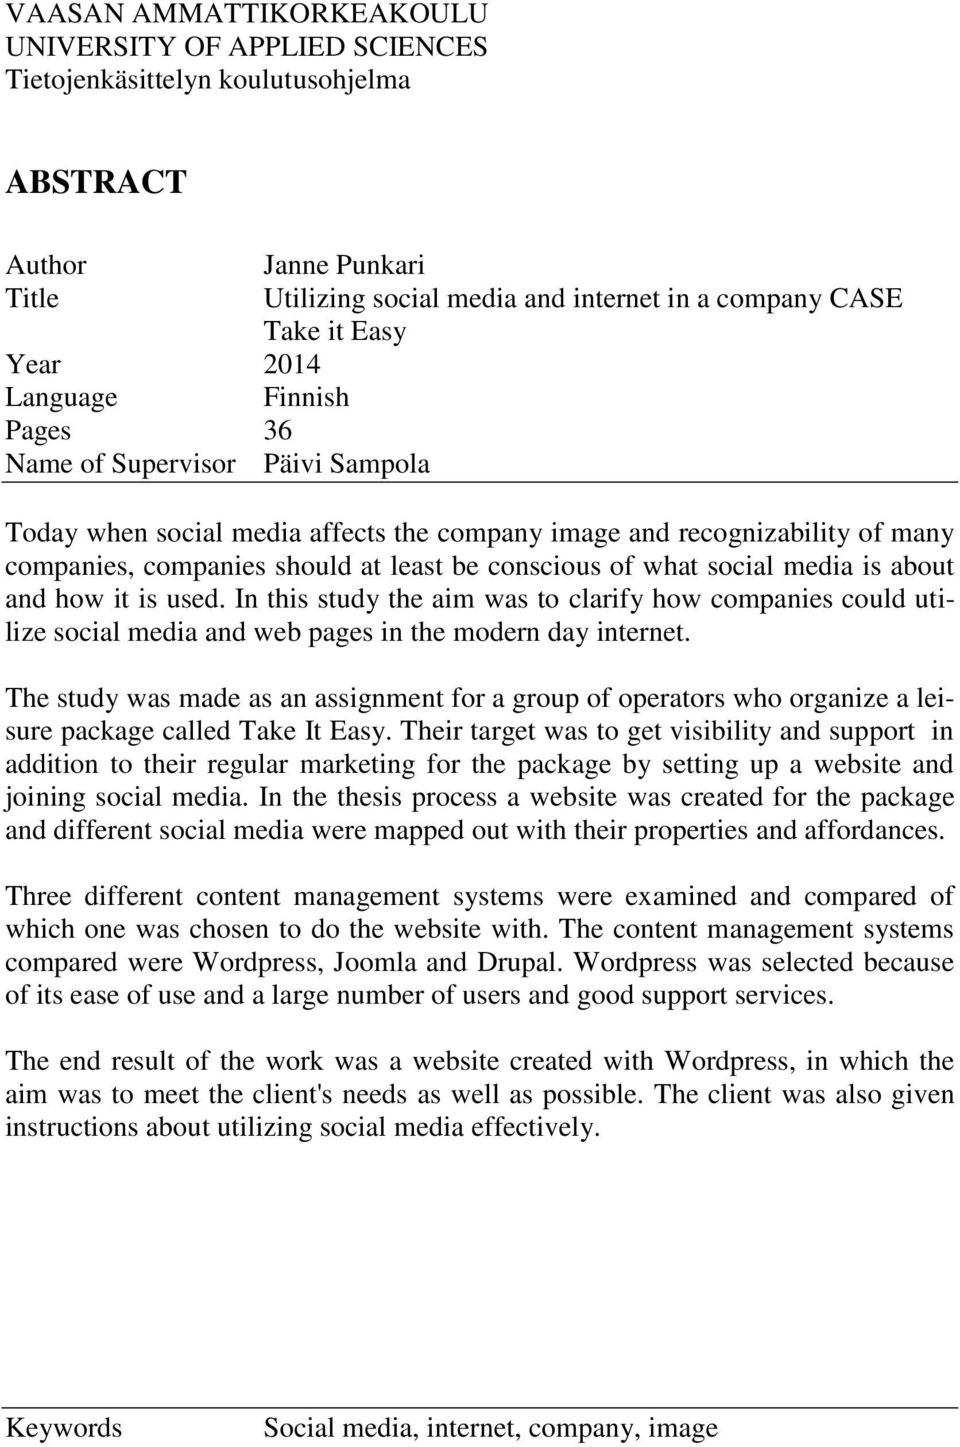 social media is about and how it is used. In this study the aim was to clarify how companies could utilize social media and web pages in the modern day internet.